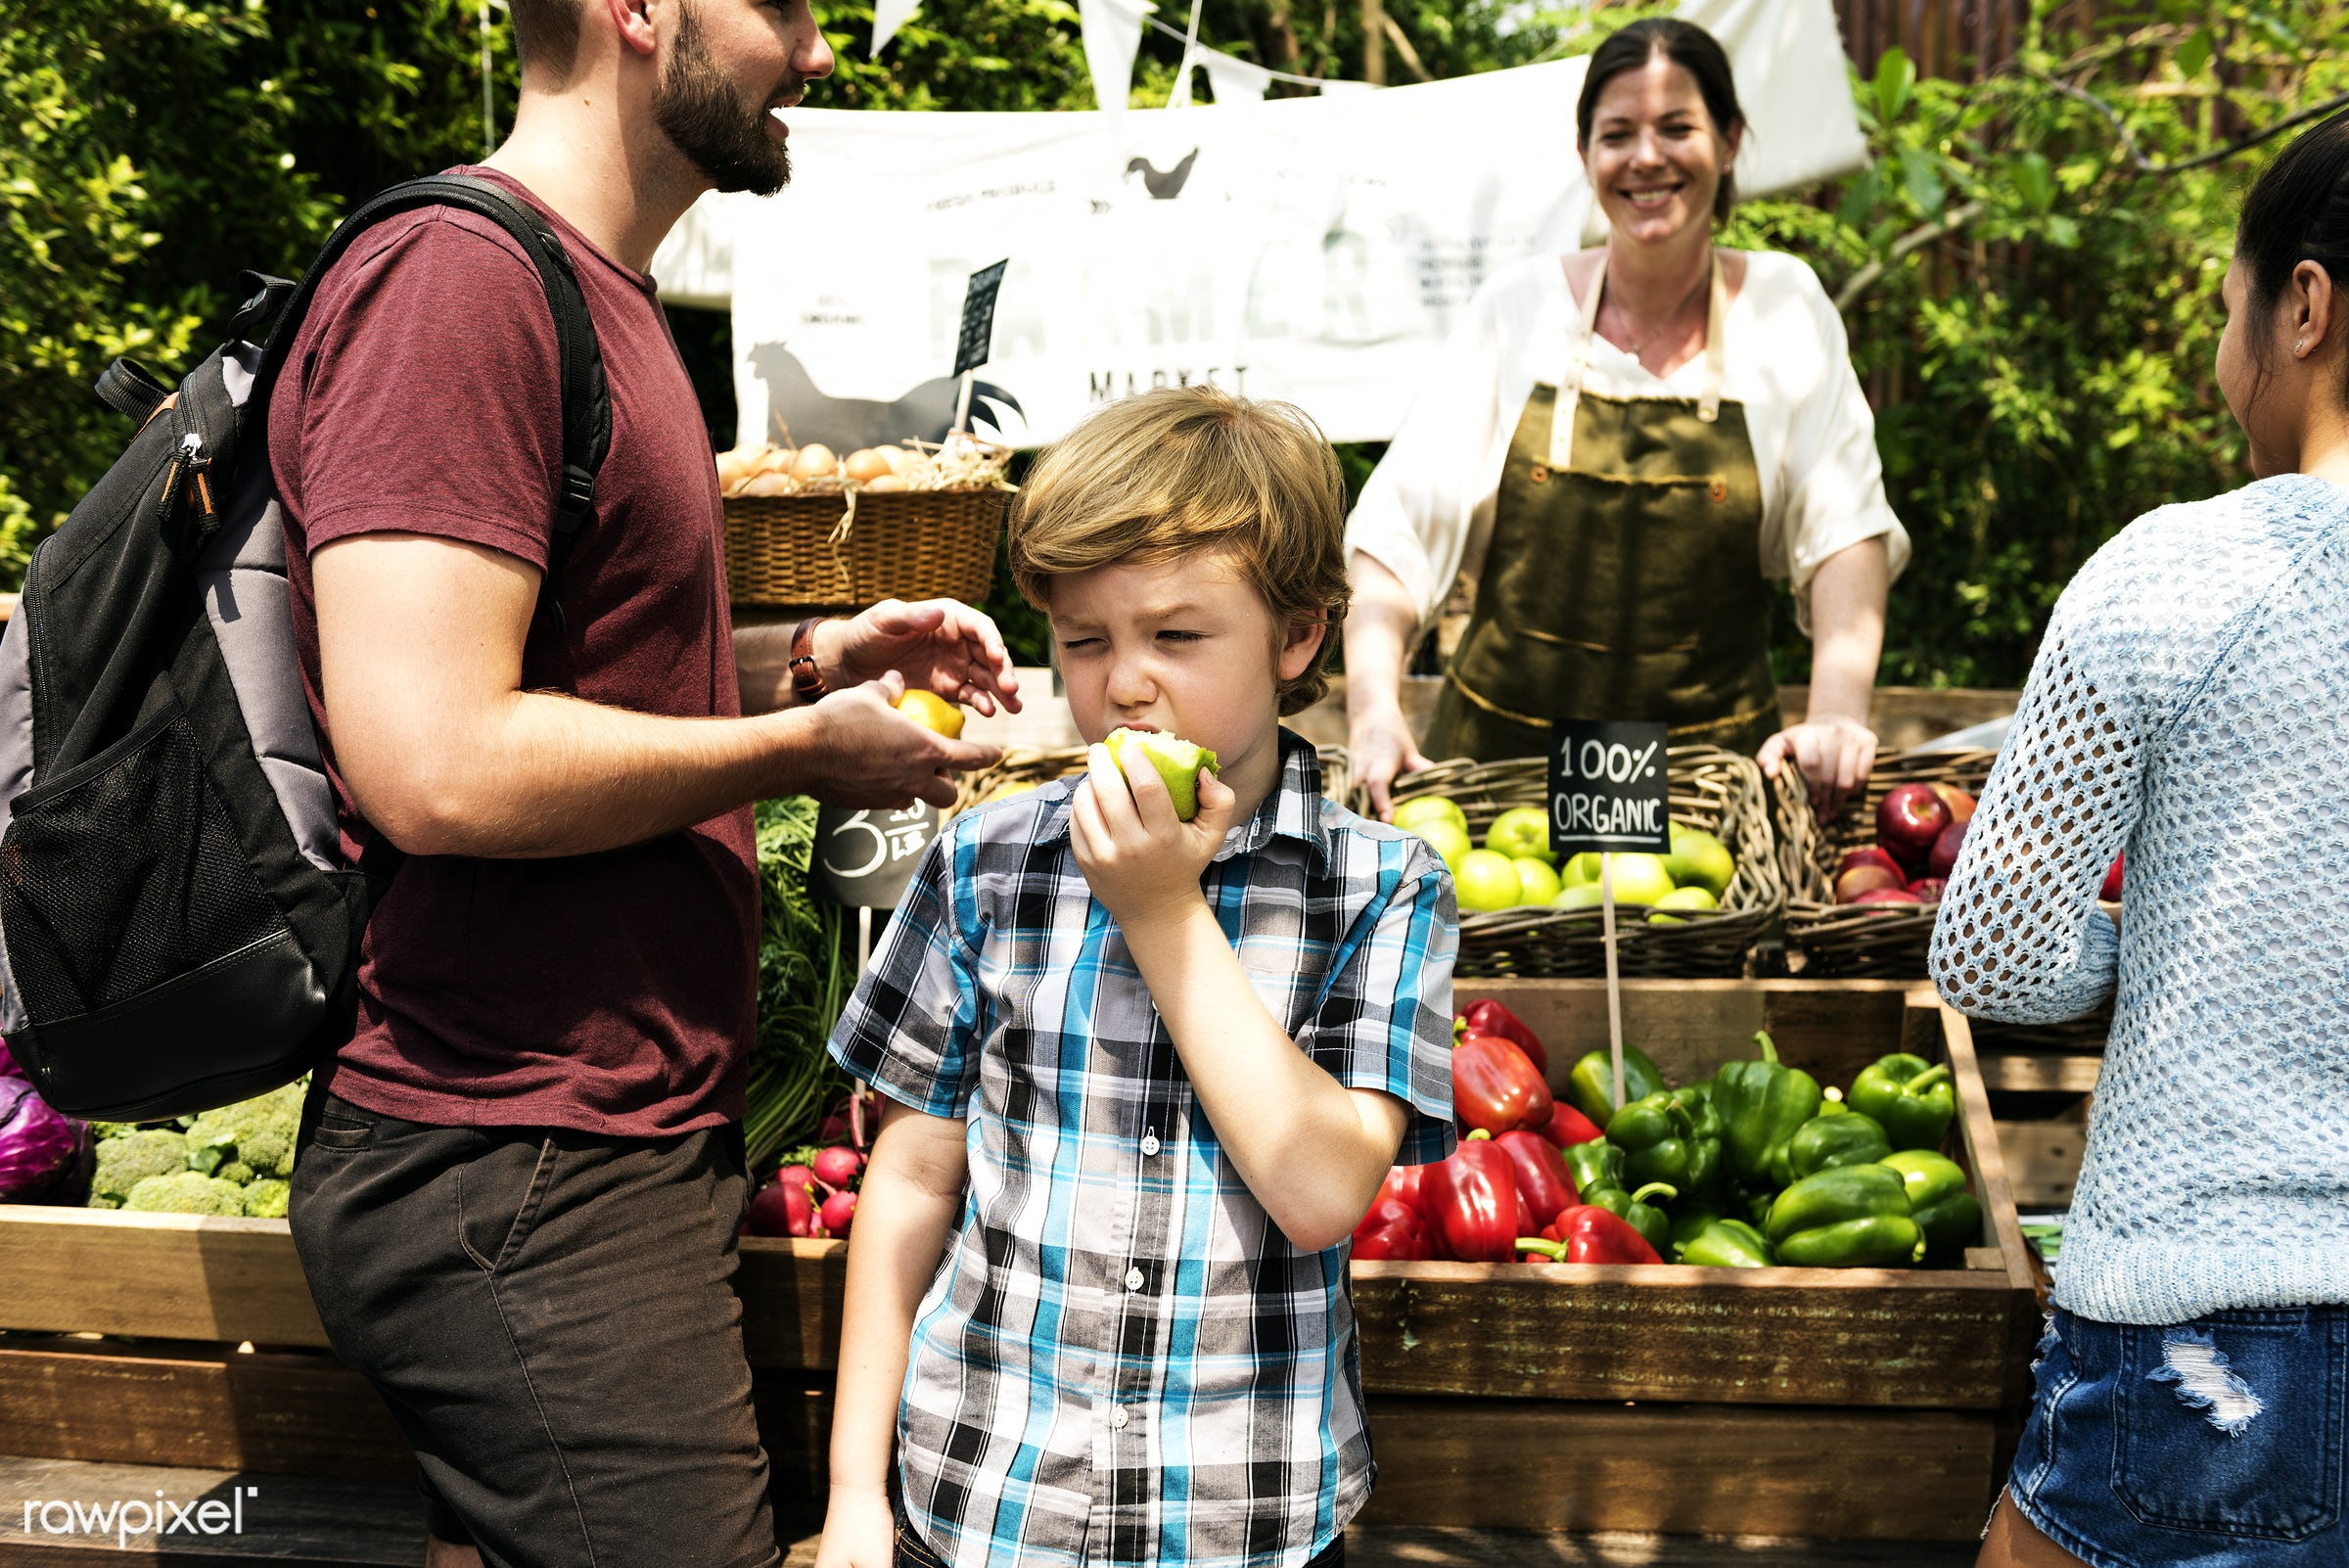 person, stall, little, consumer, taste, people, chew, kid, farmer, lifestyle, action, gourmet, fruit, kids, nutrition, tasty...